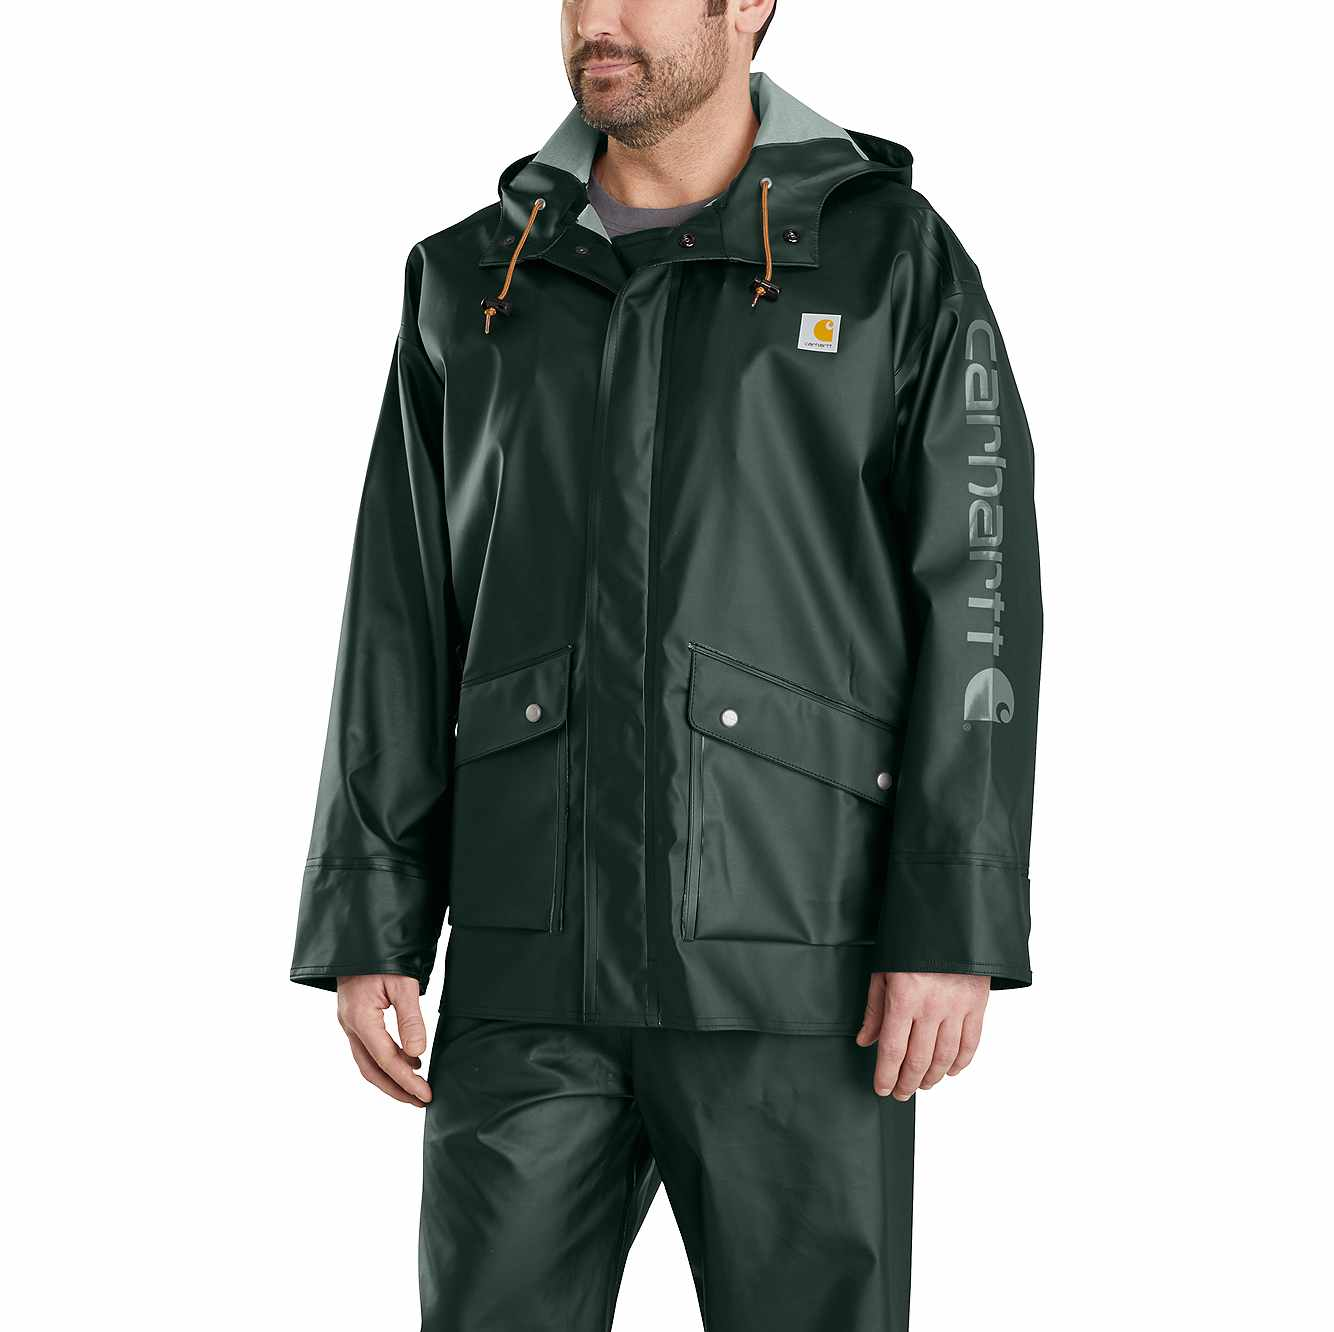 Picture of Midweight Waterproof Rainstorm Jacket in Canopy Green